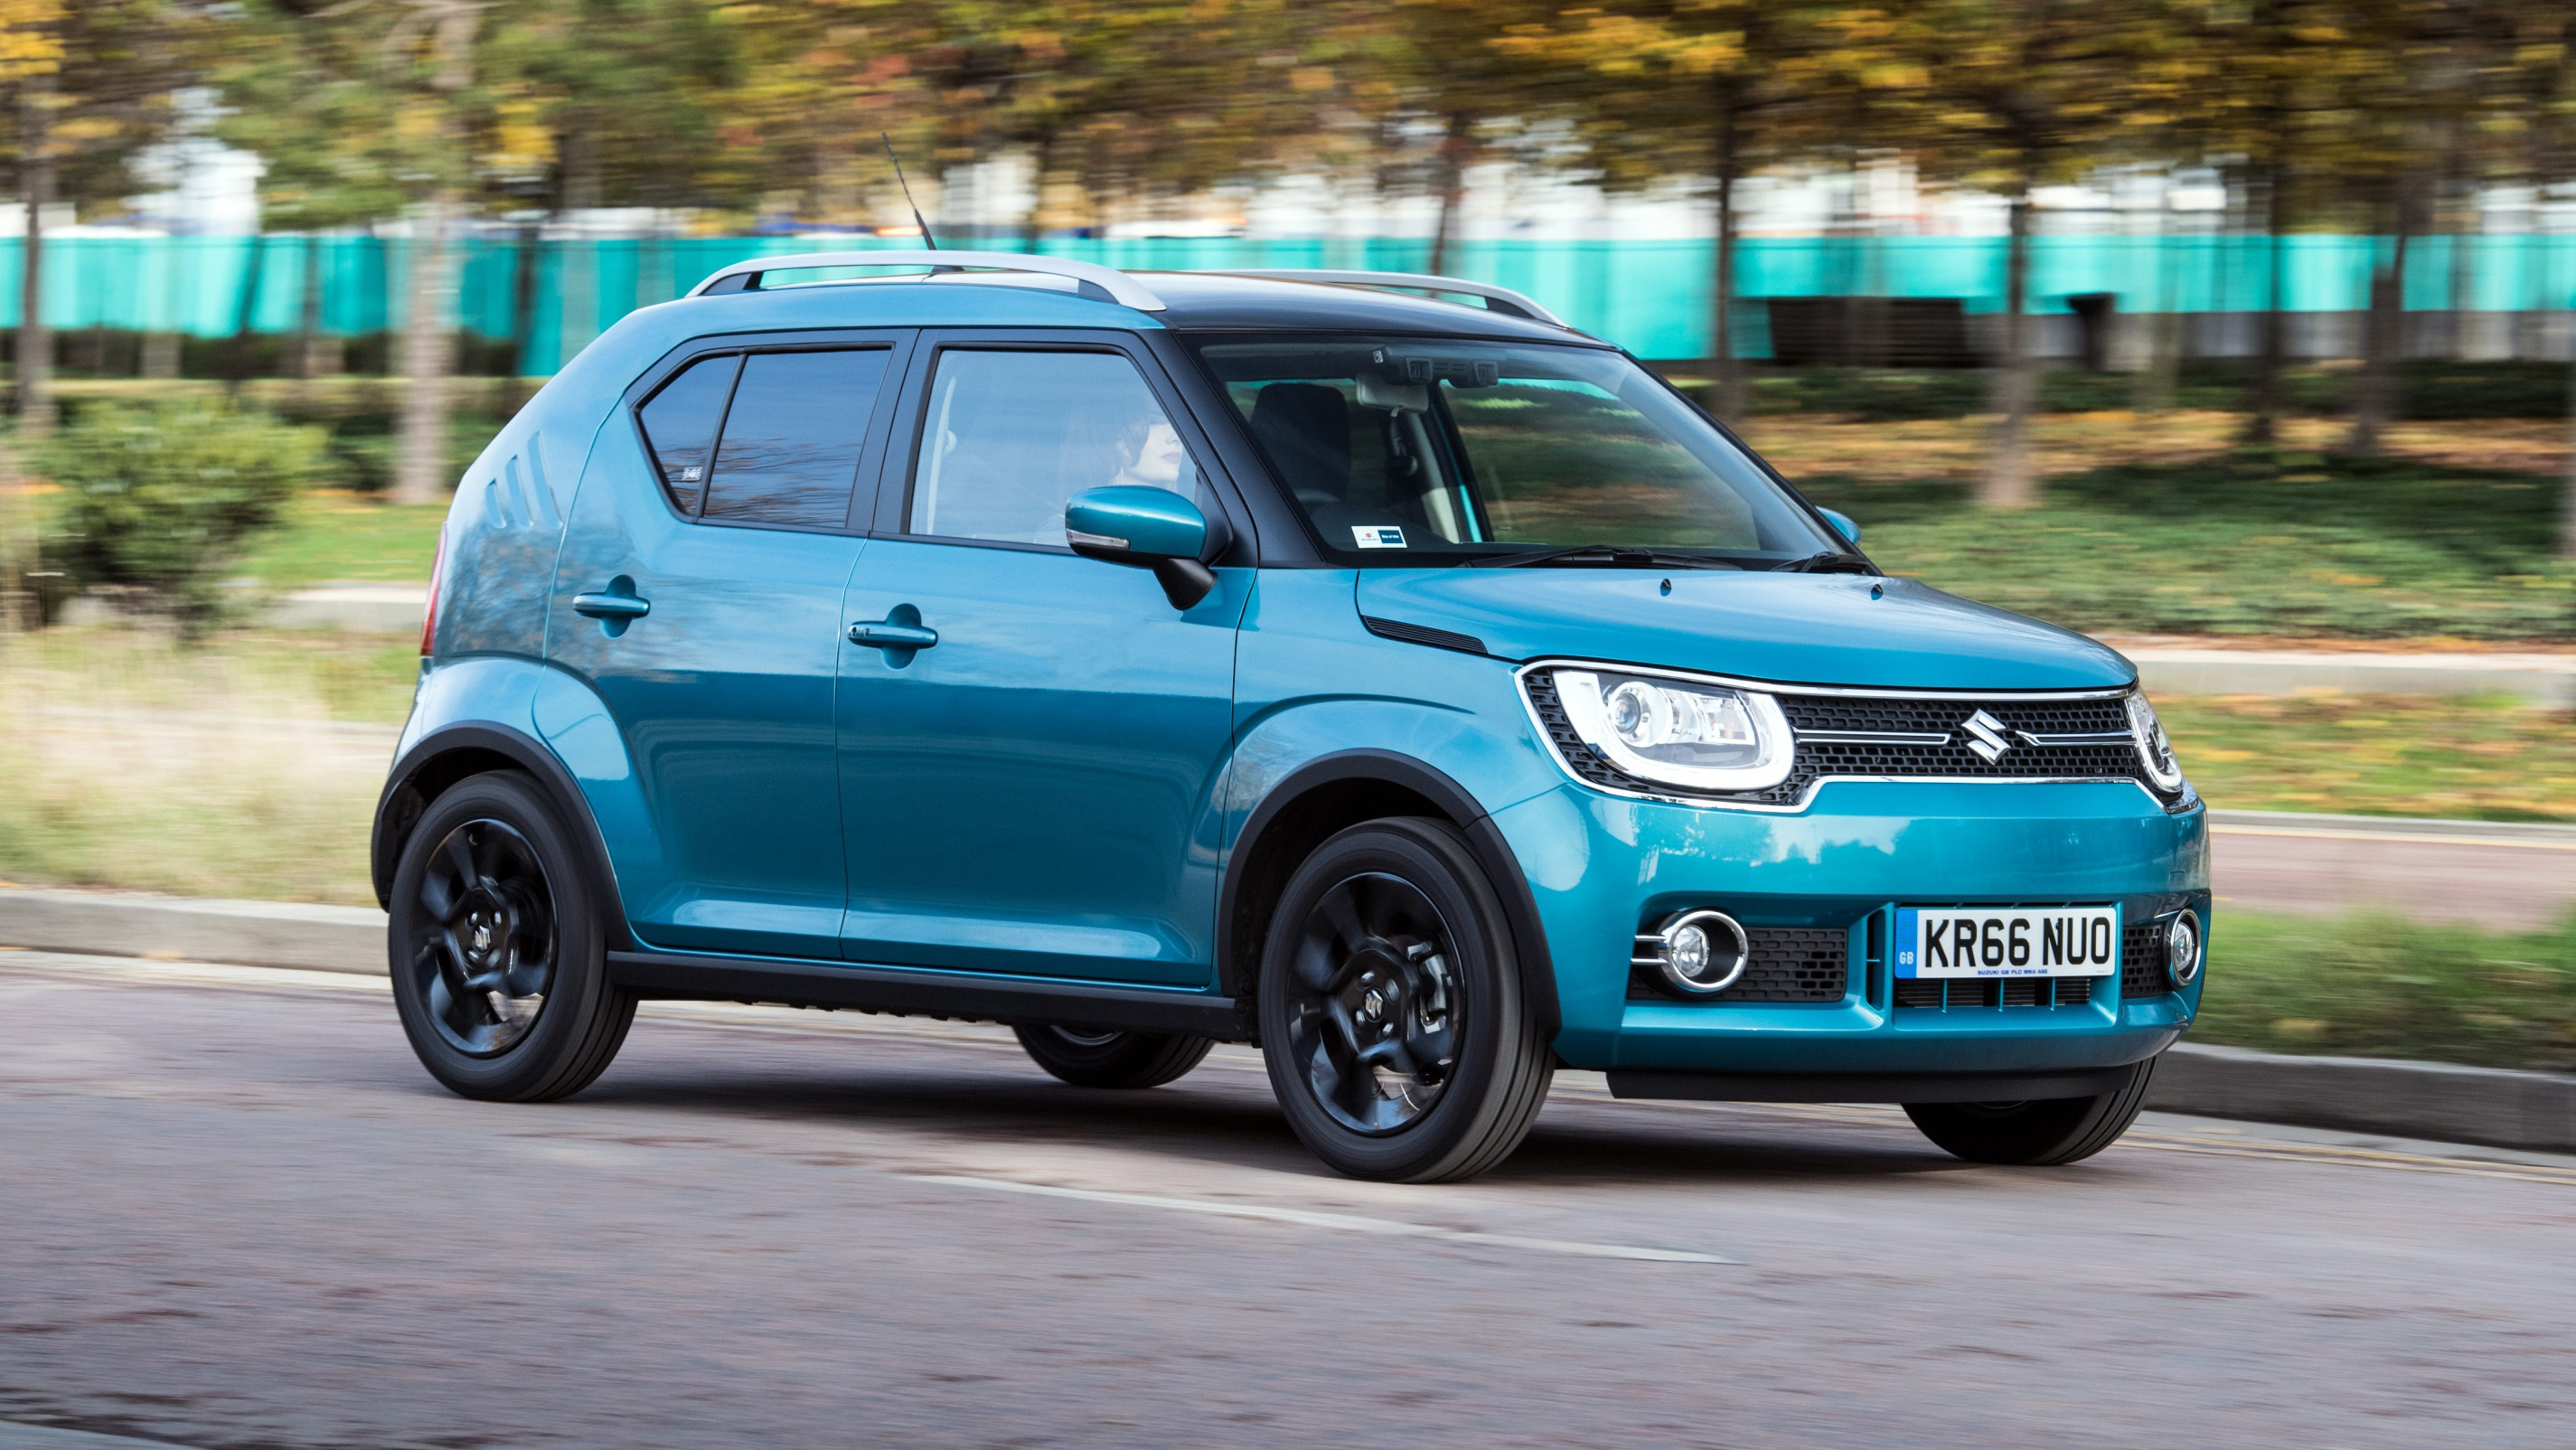 Suzuki Ignis Review: City Crossover Tested In The UK